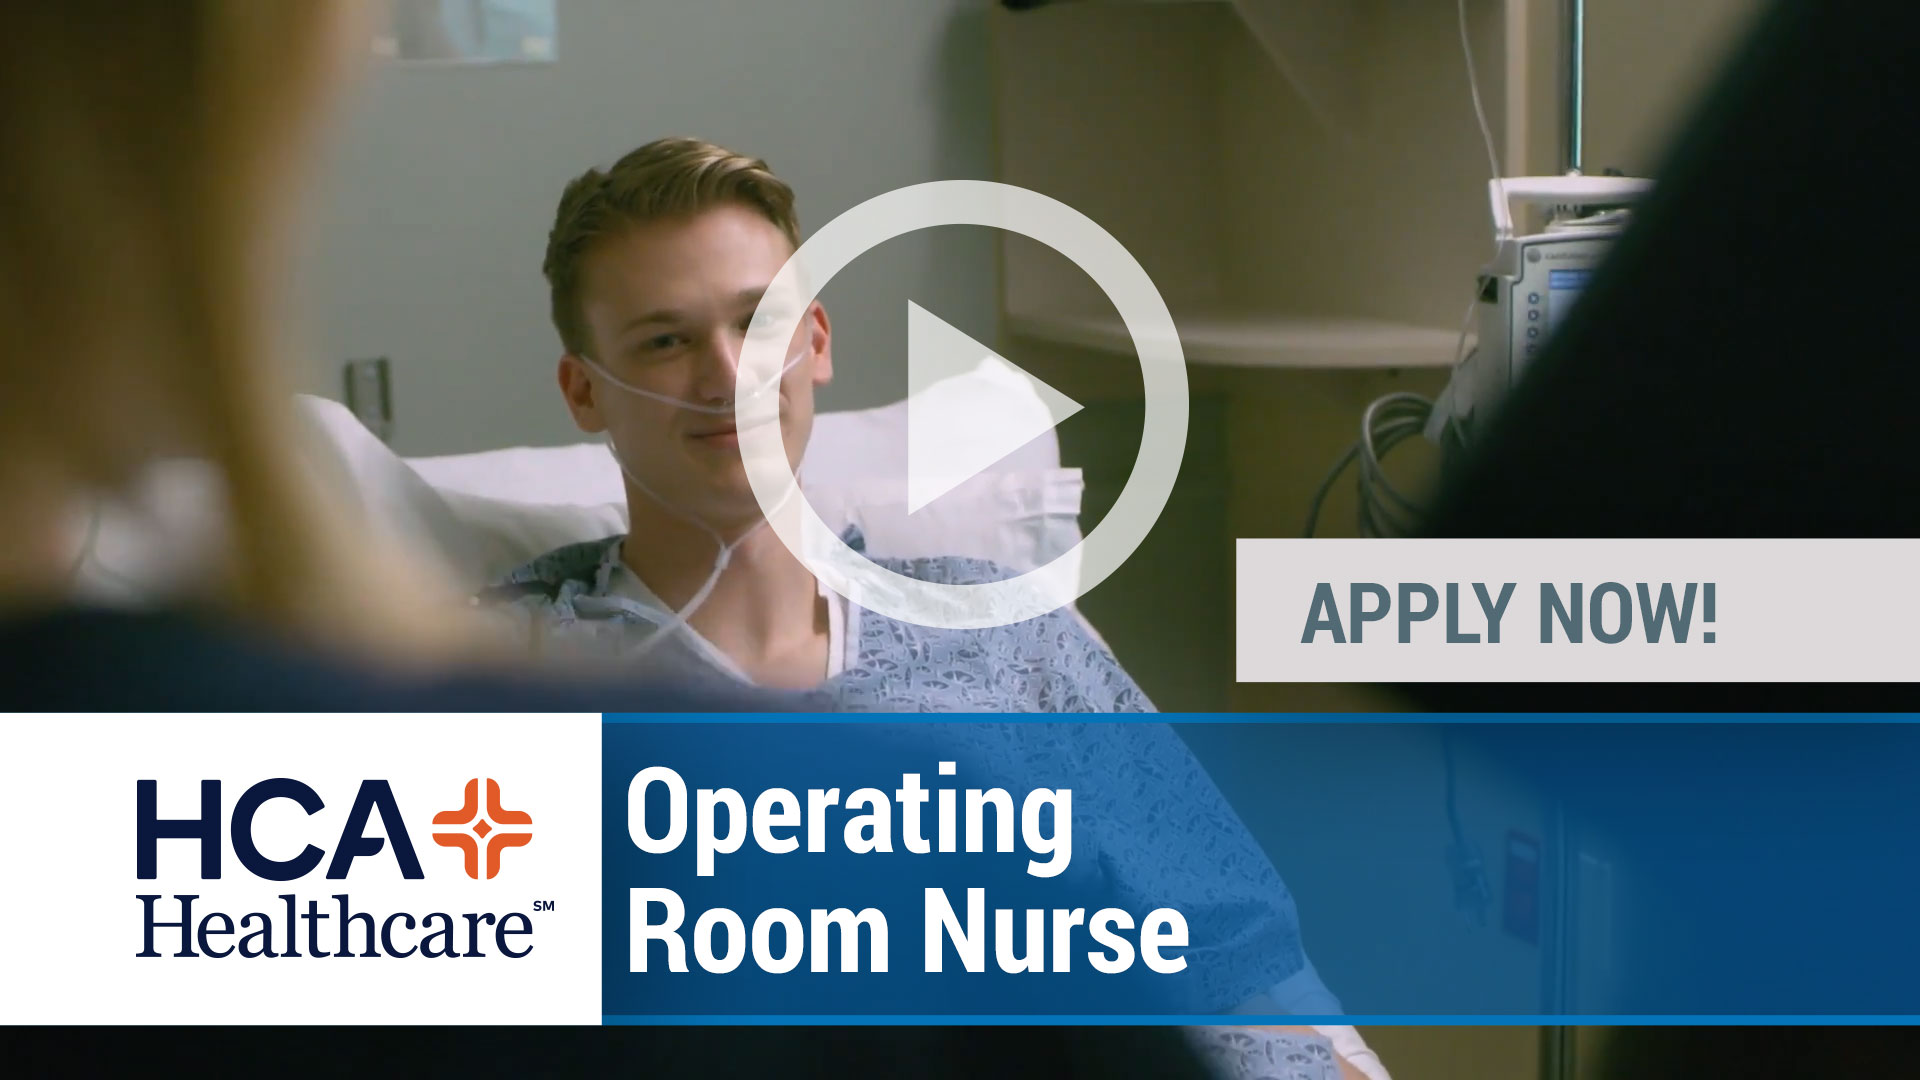 Watch our careers video for available job opening Operating Room Nurse in Jacksonville, Florida